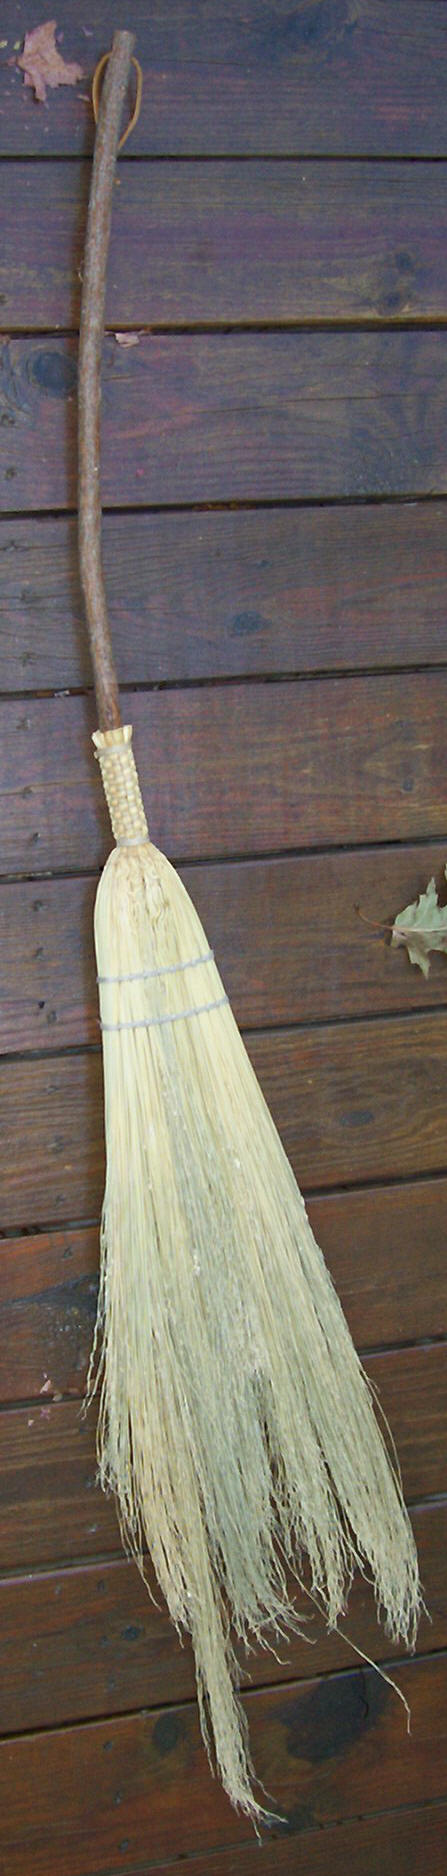 ©SJB Minsitries LLC, Modern Artistian Broom made with the past in mind, Jumping the Broom, Slave marriages, slave wedding brooms, slave wedding history